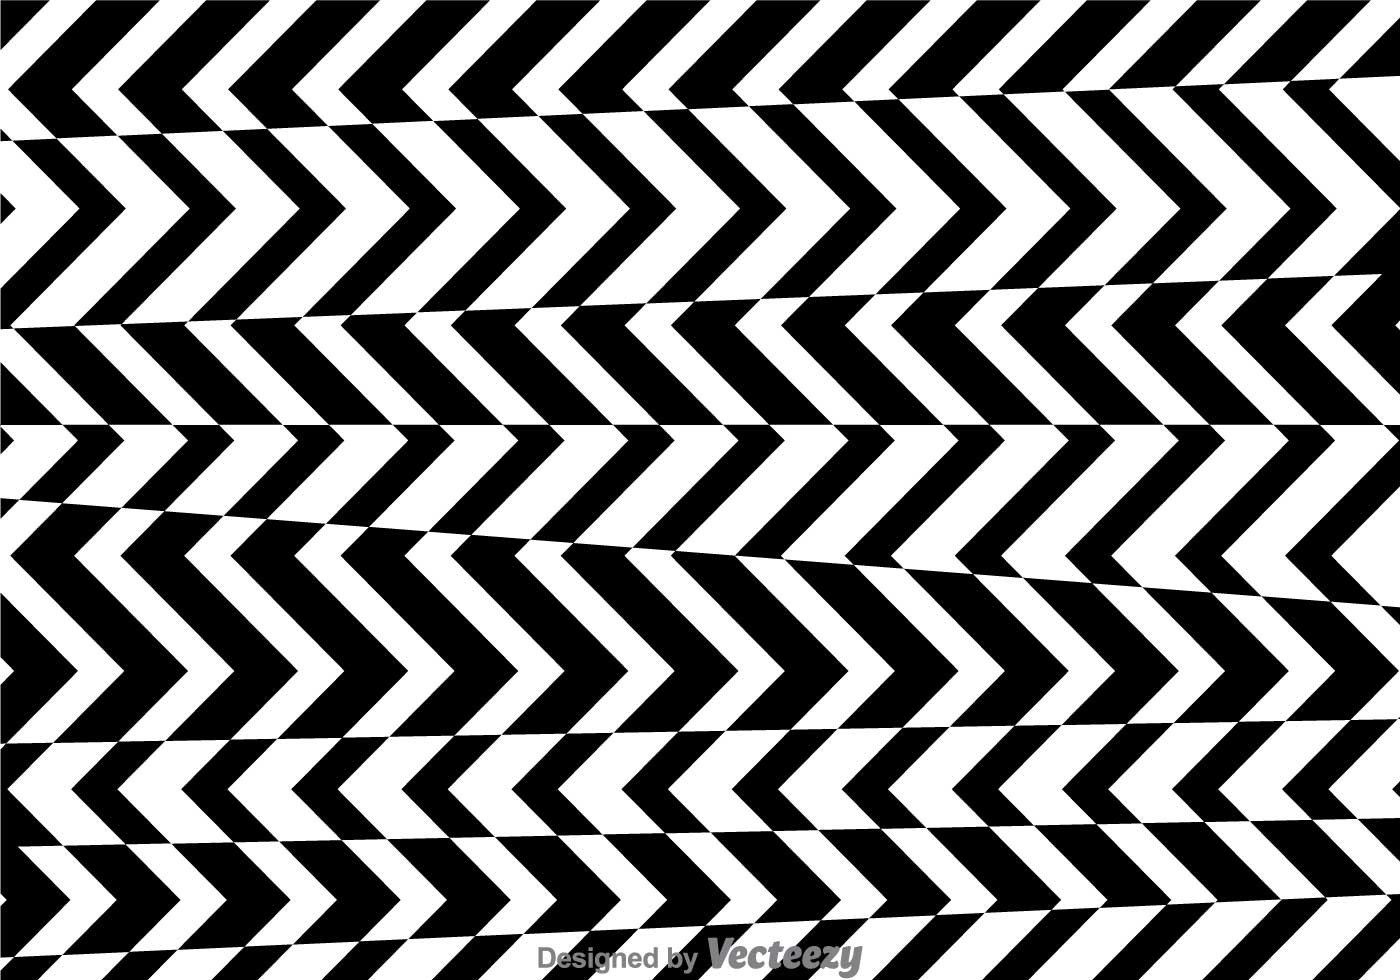 Patterns Black and White Stripe Black and White Pattern Download Free Vector Art